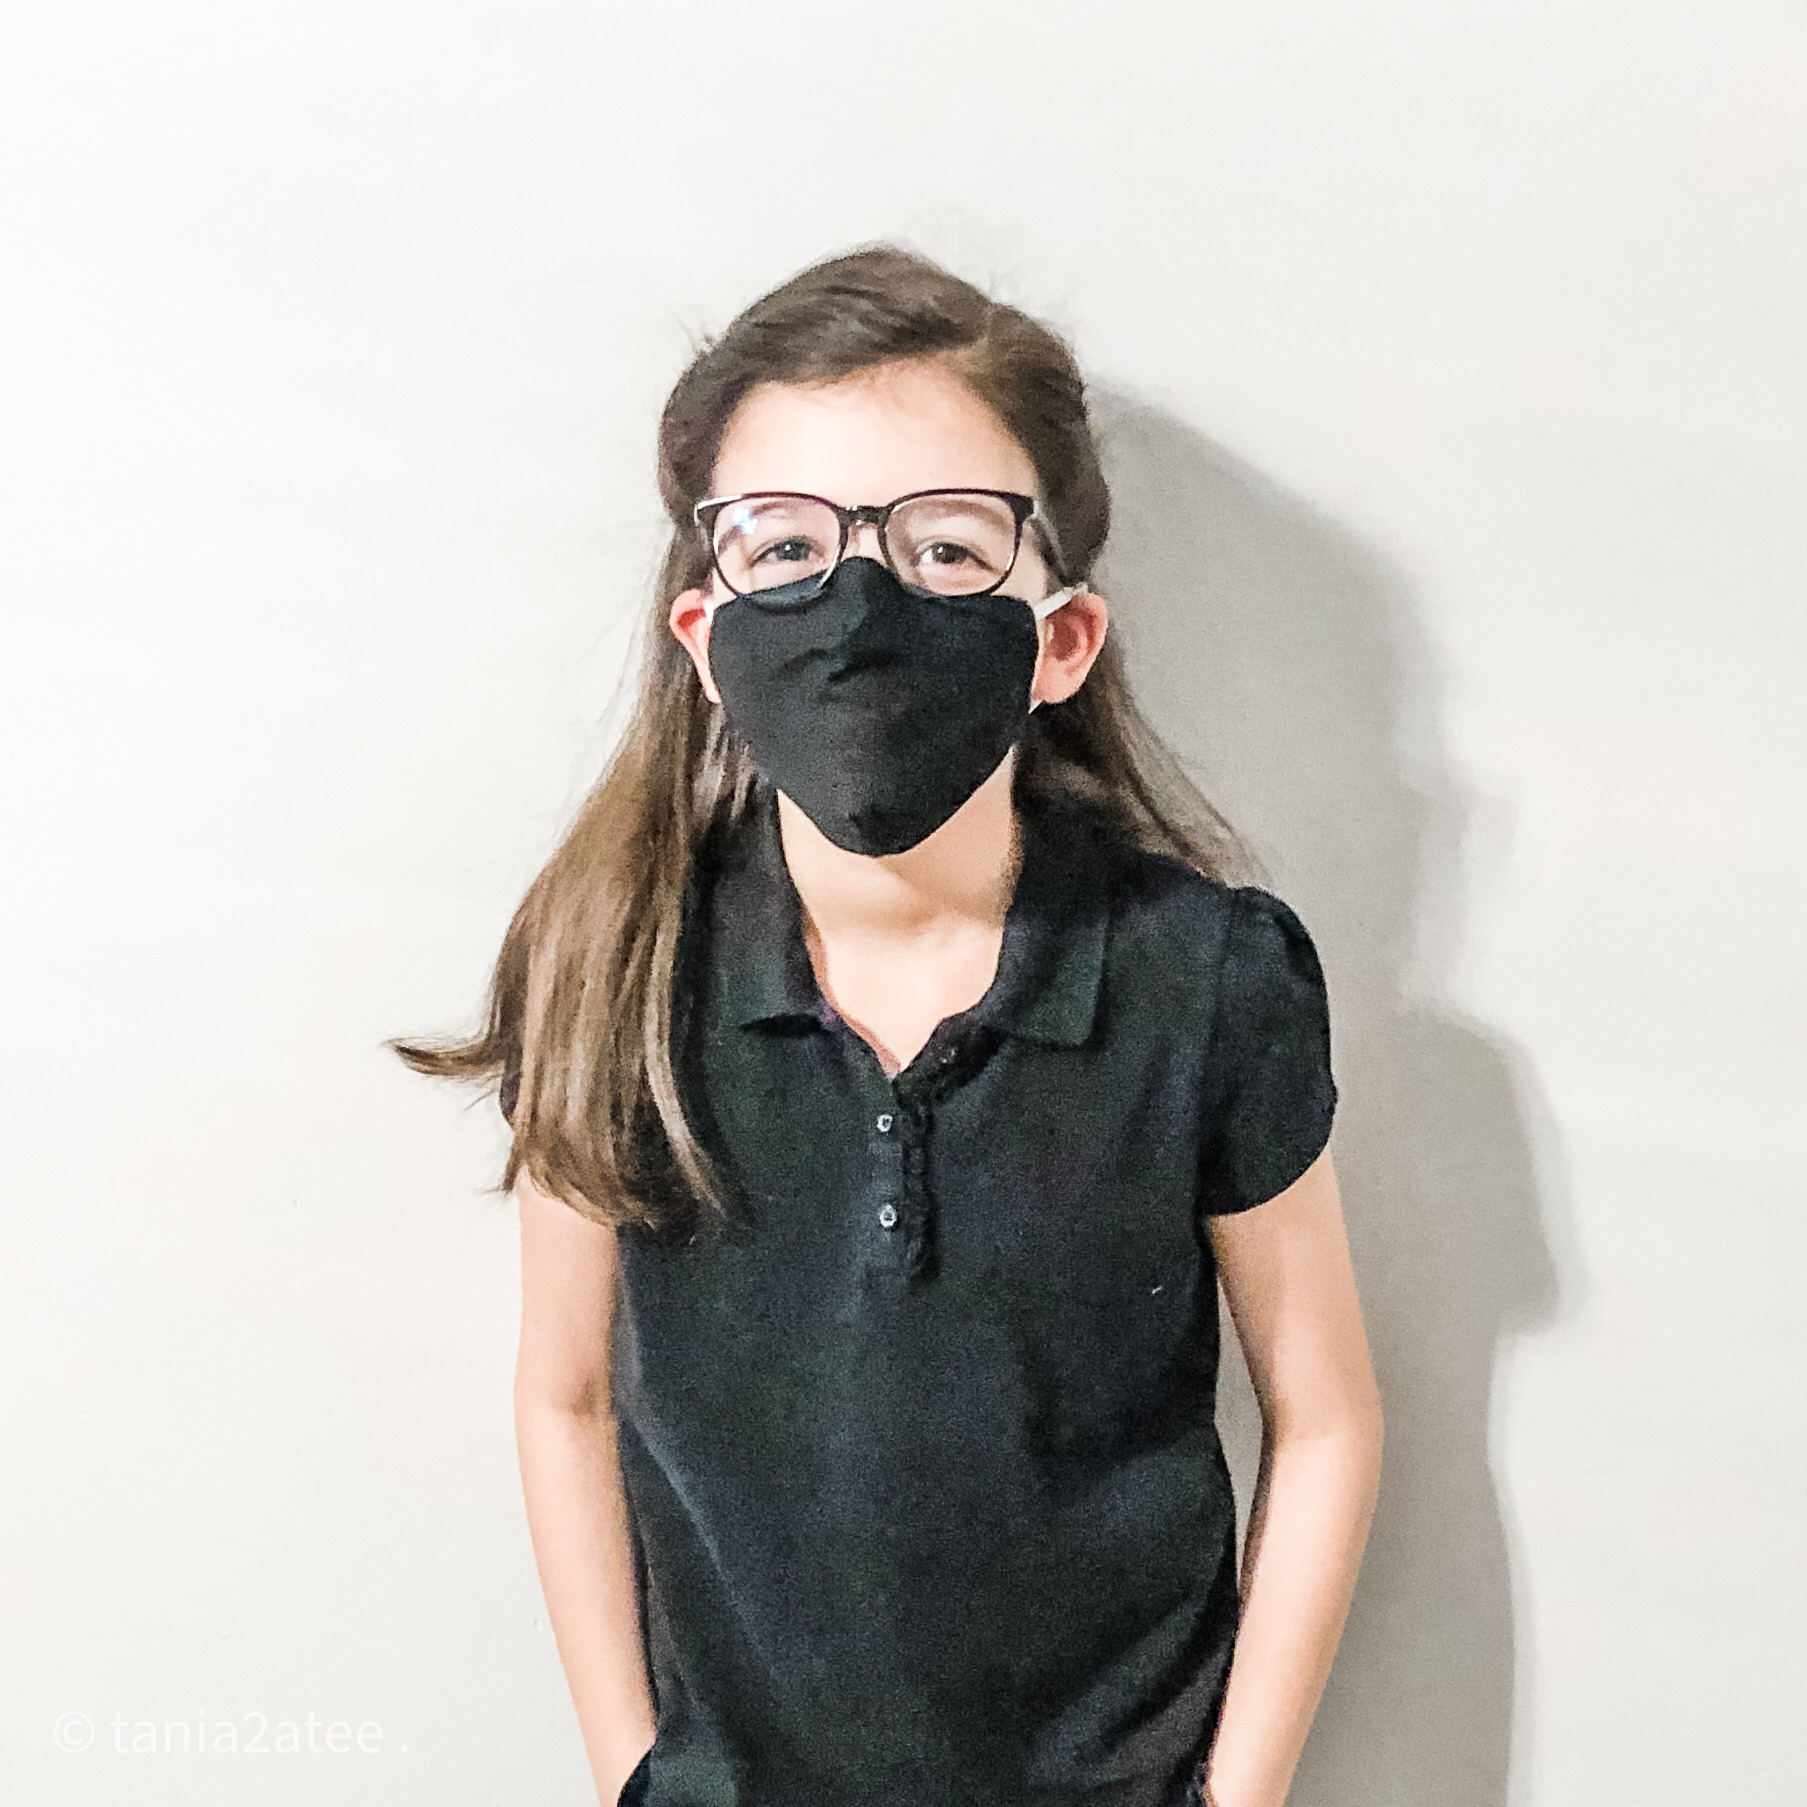 girl posing for camera with hands in her pockets wearing black top and pants, glasses and black face mask